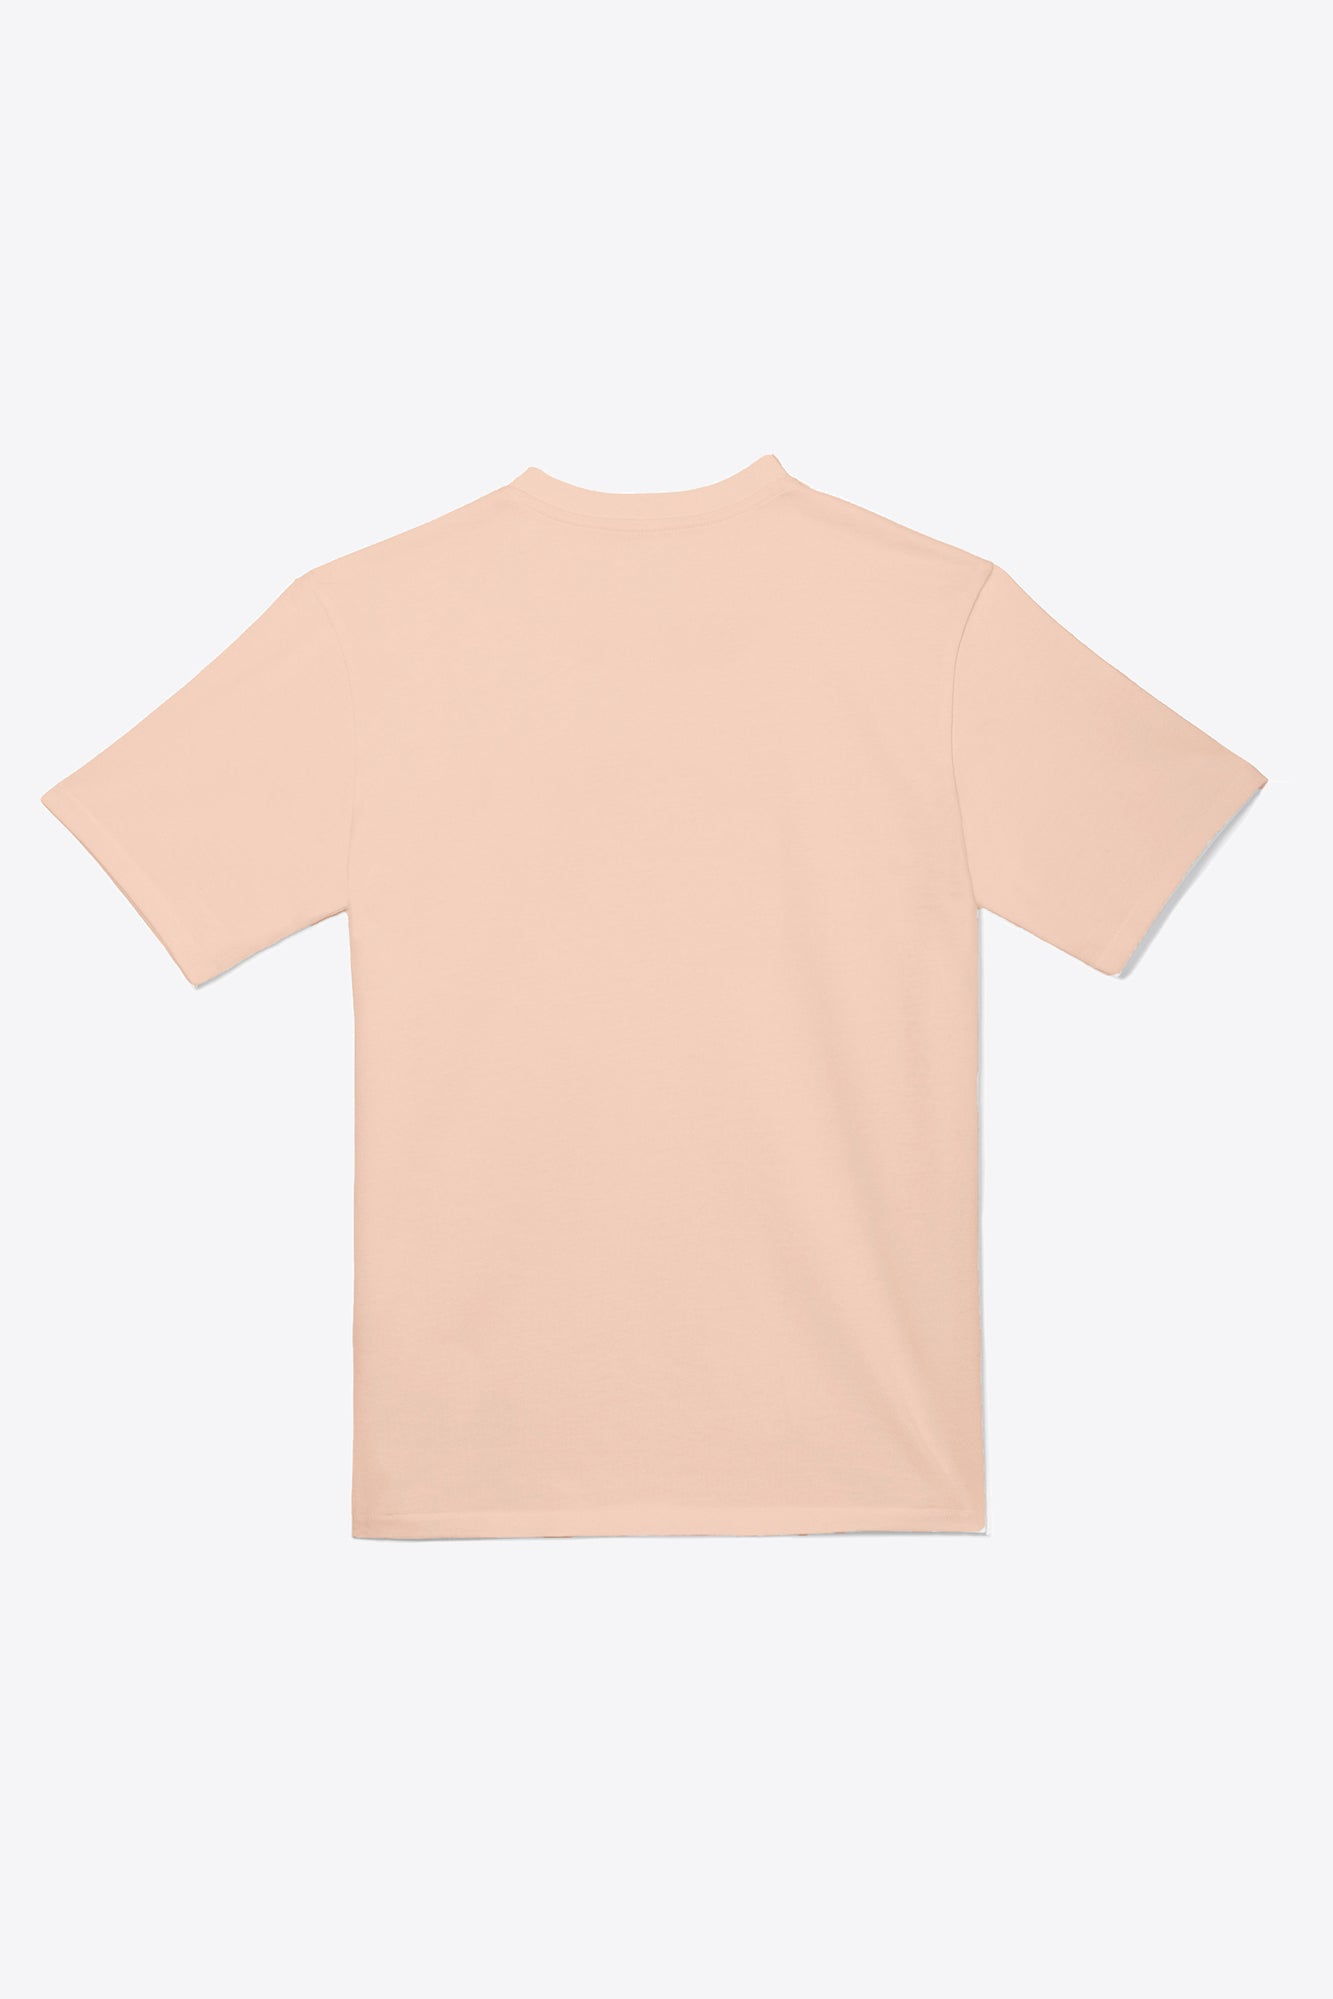 Pale Orange Tonal Embroidered Tee